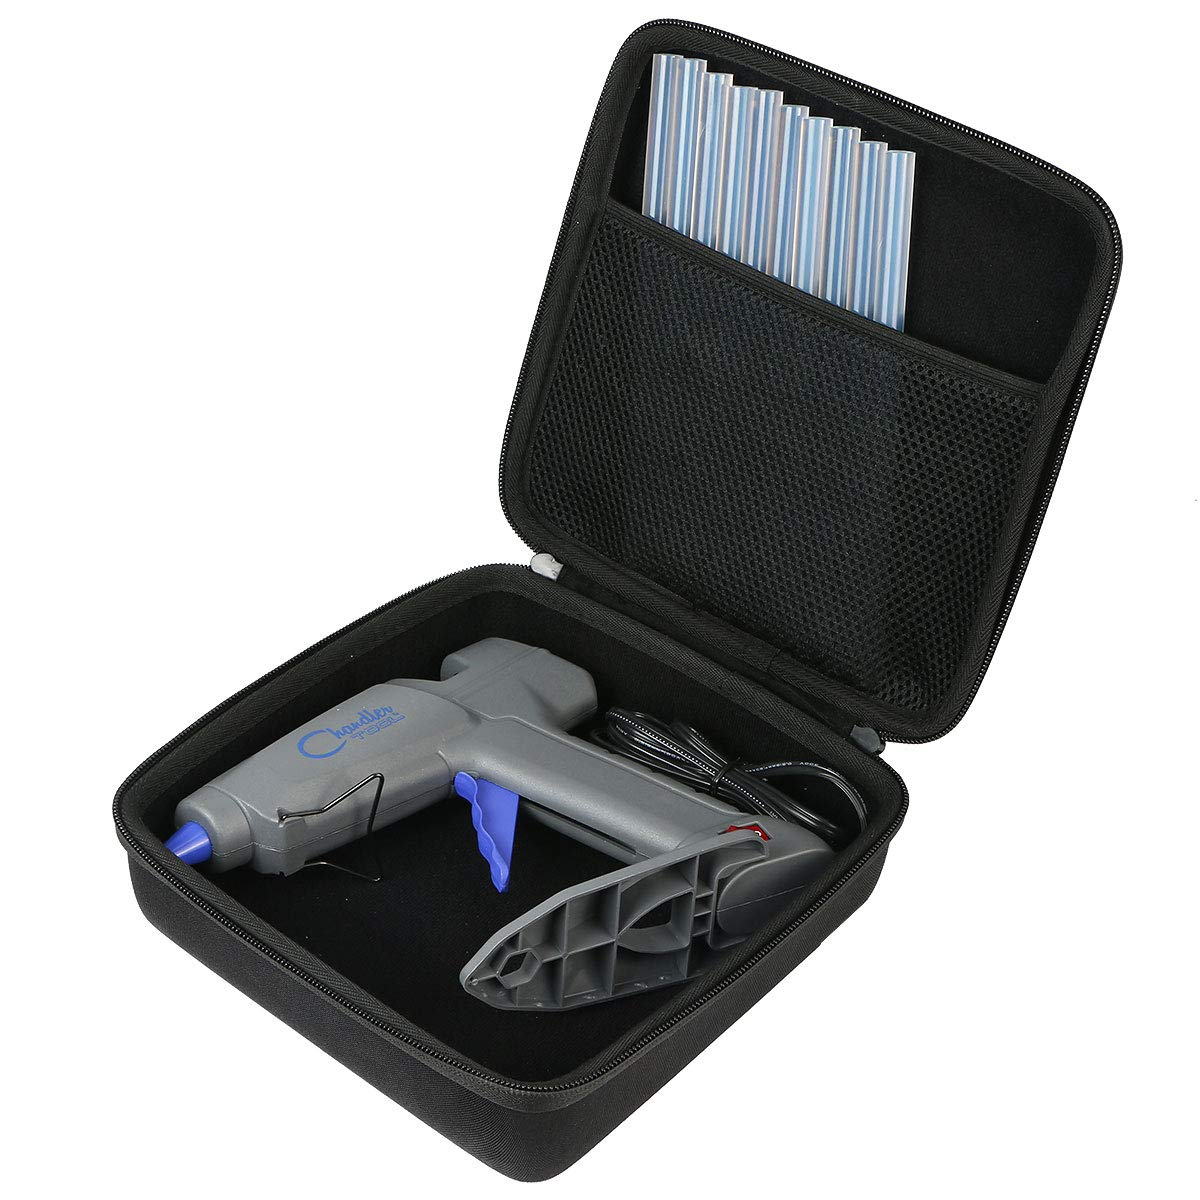 co2crea Hard Travel Case for Chandler Tool Commercial/Large Glue Gun by co2crea